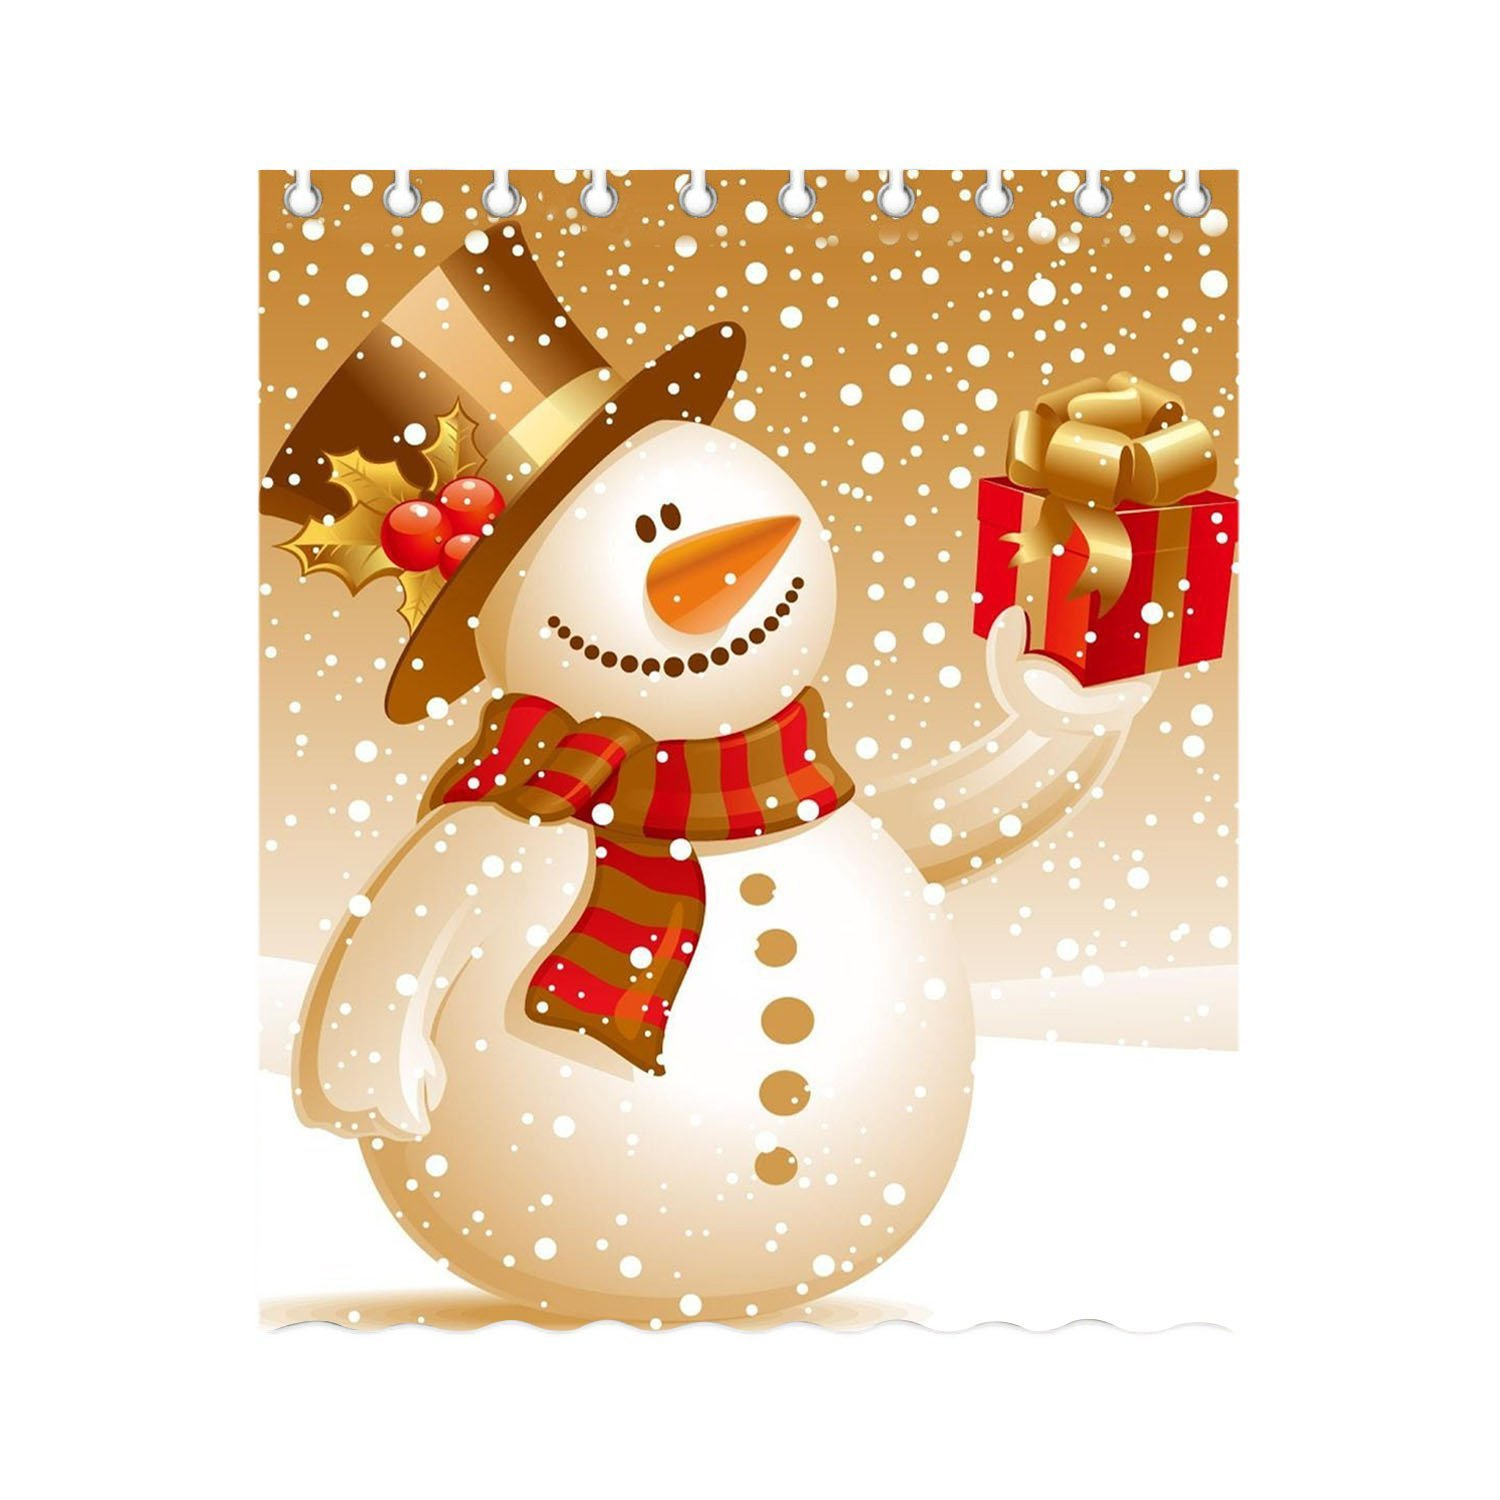 Burning Love Snowman with Gifts Shower curtain Waterproof Polyester curtains For Bathroom Home Decor Size 150x180cm.